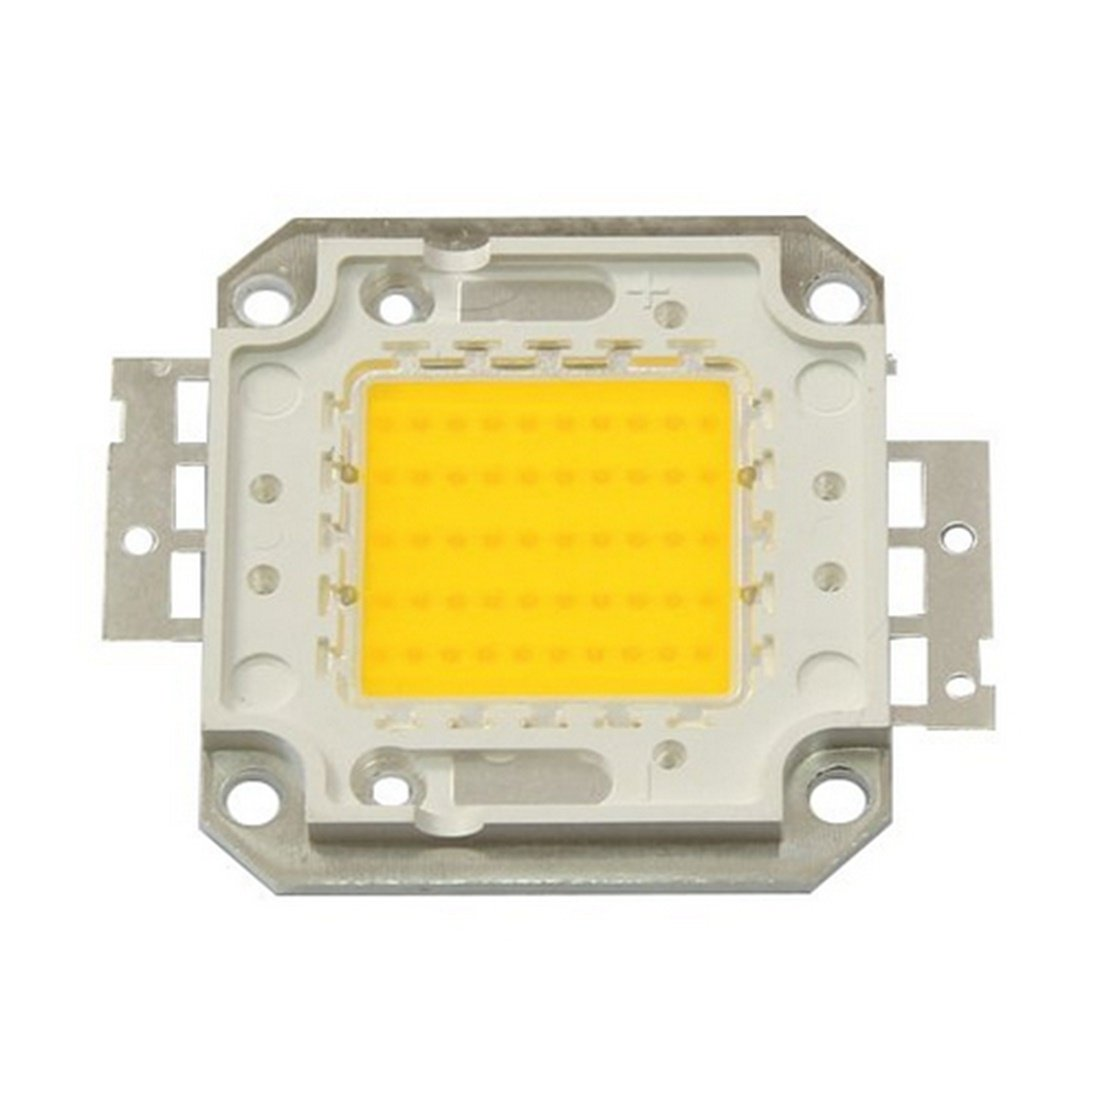 JUJIANFU-Bulbs High Power LED Chip Beads COB Beads 20W 30W 50W 70W 100W 3000K/6000K for Floodlight Spotlight (Color : Warm white-70W)